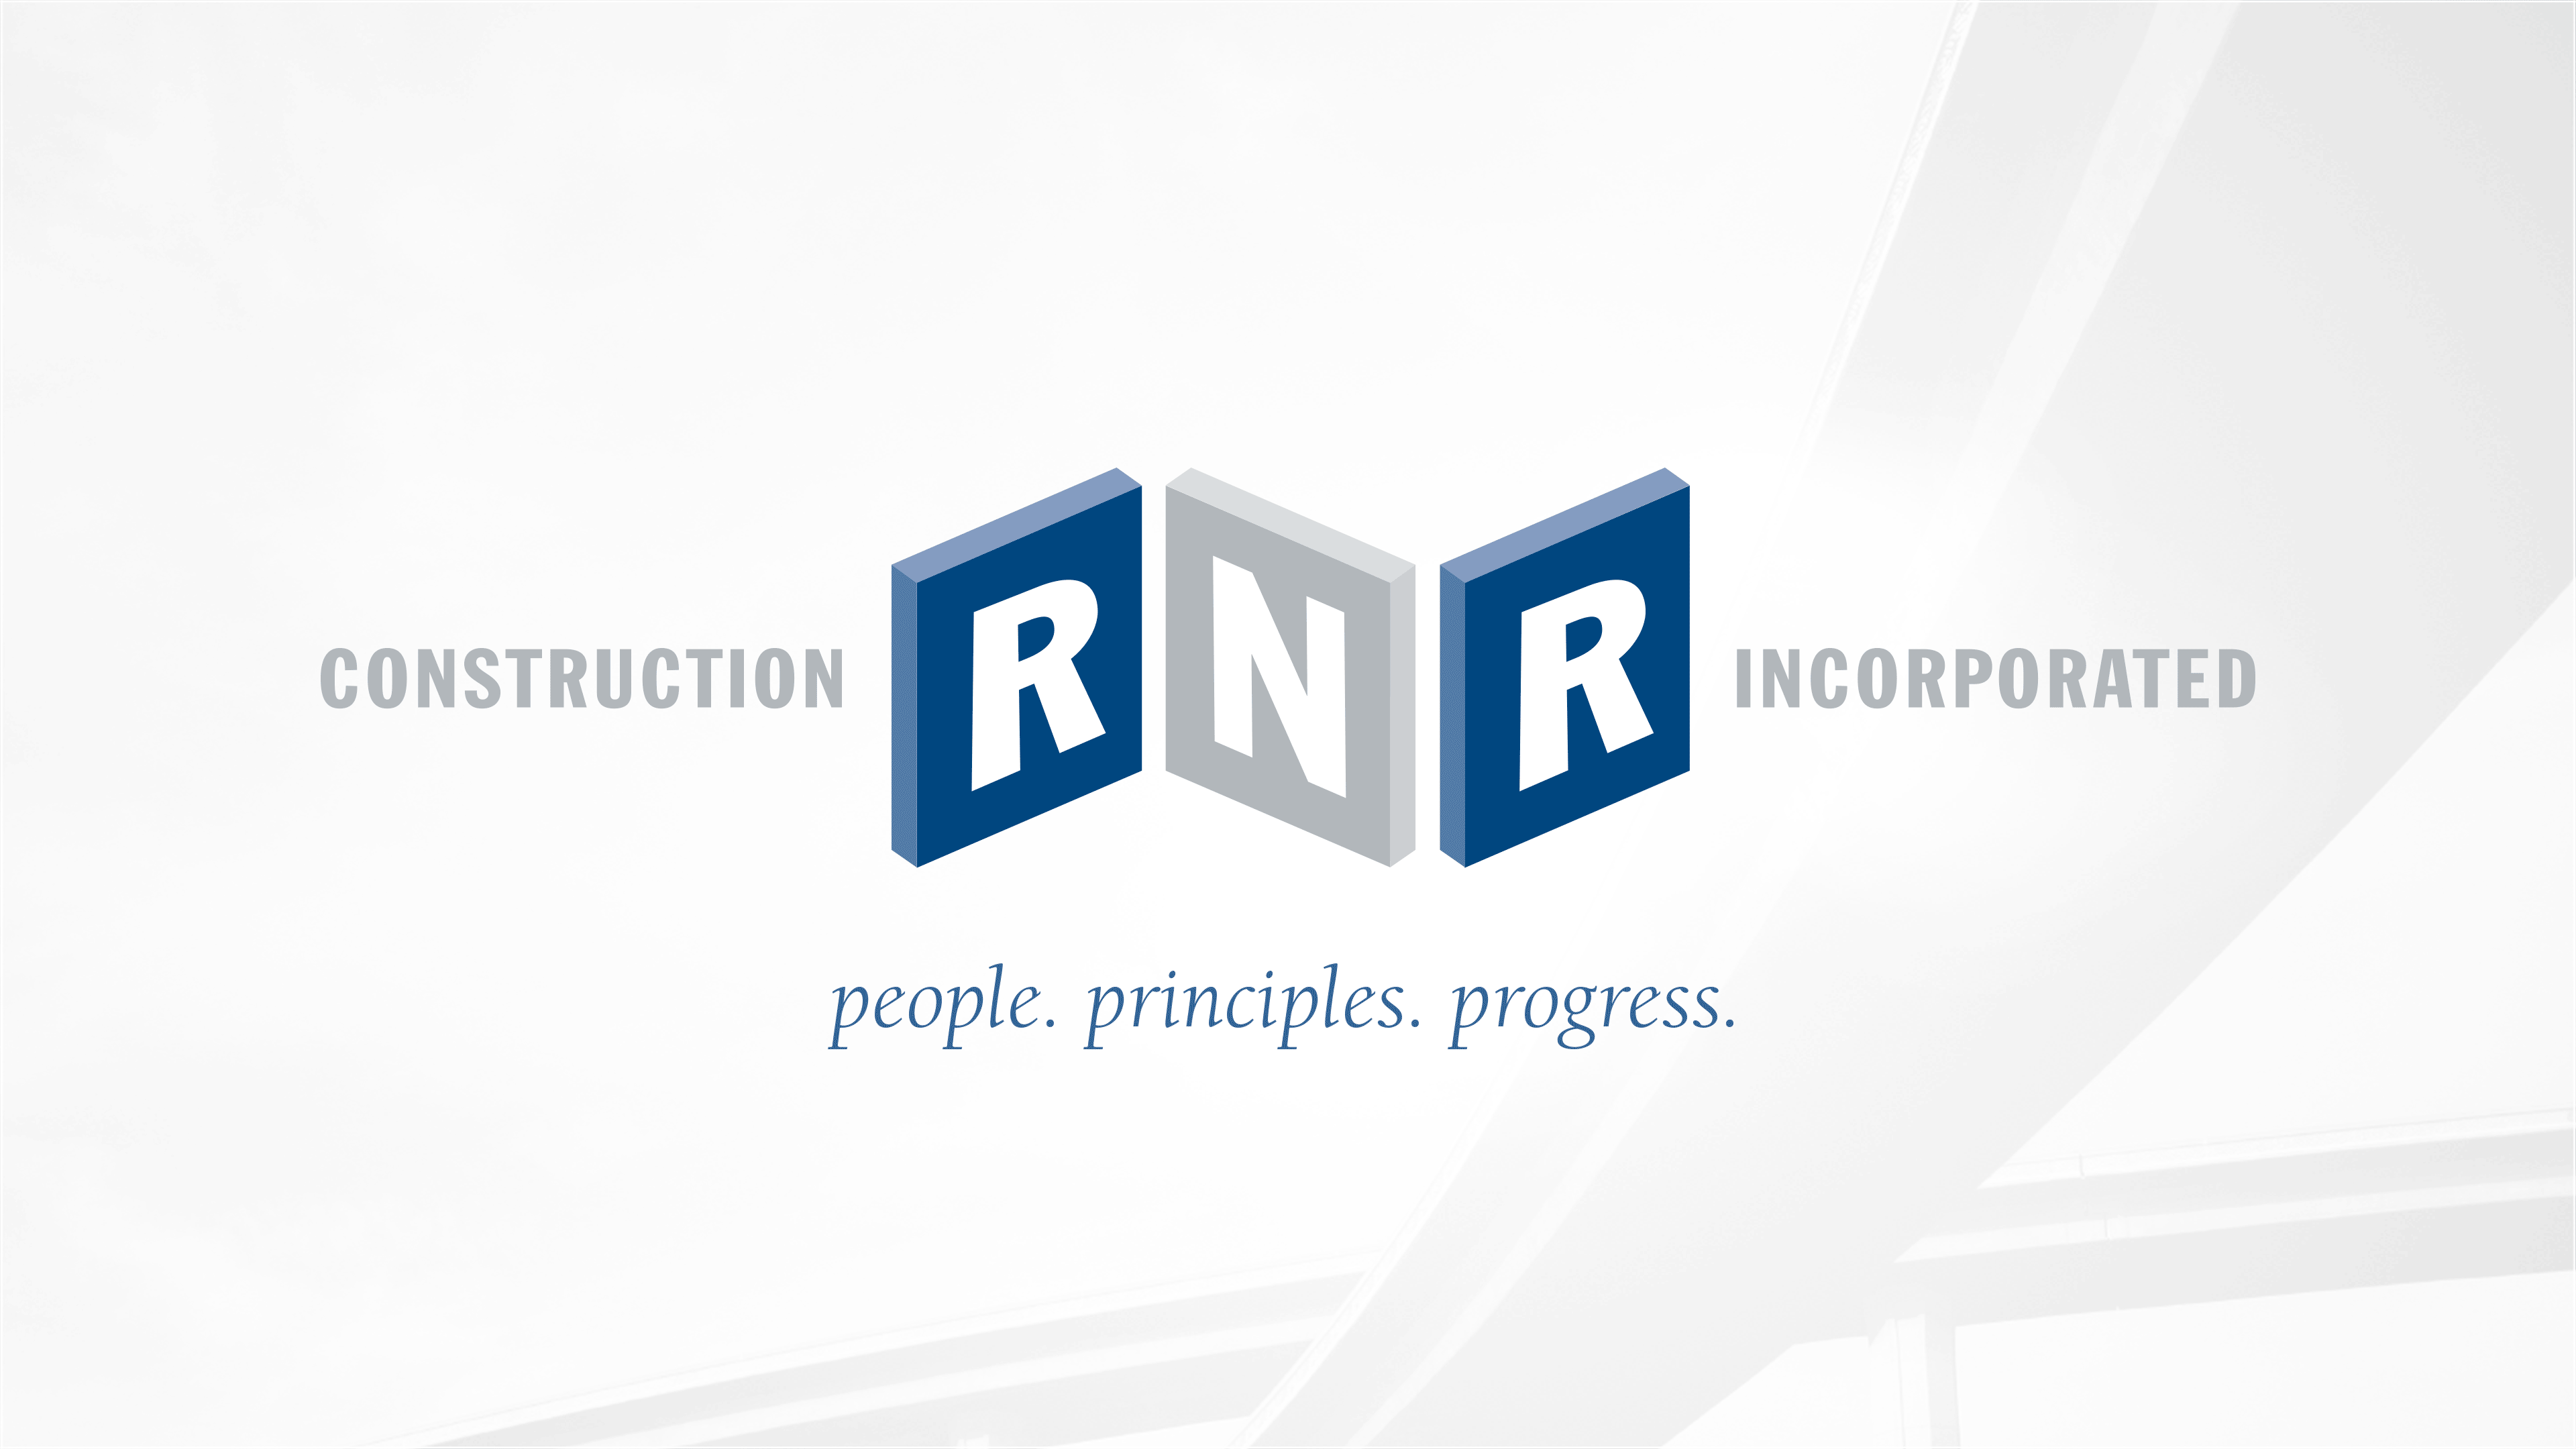 Logo of RNR Construction we designed